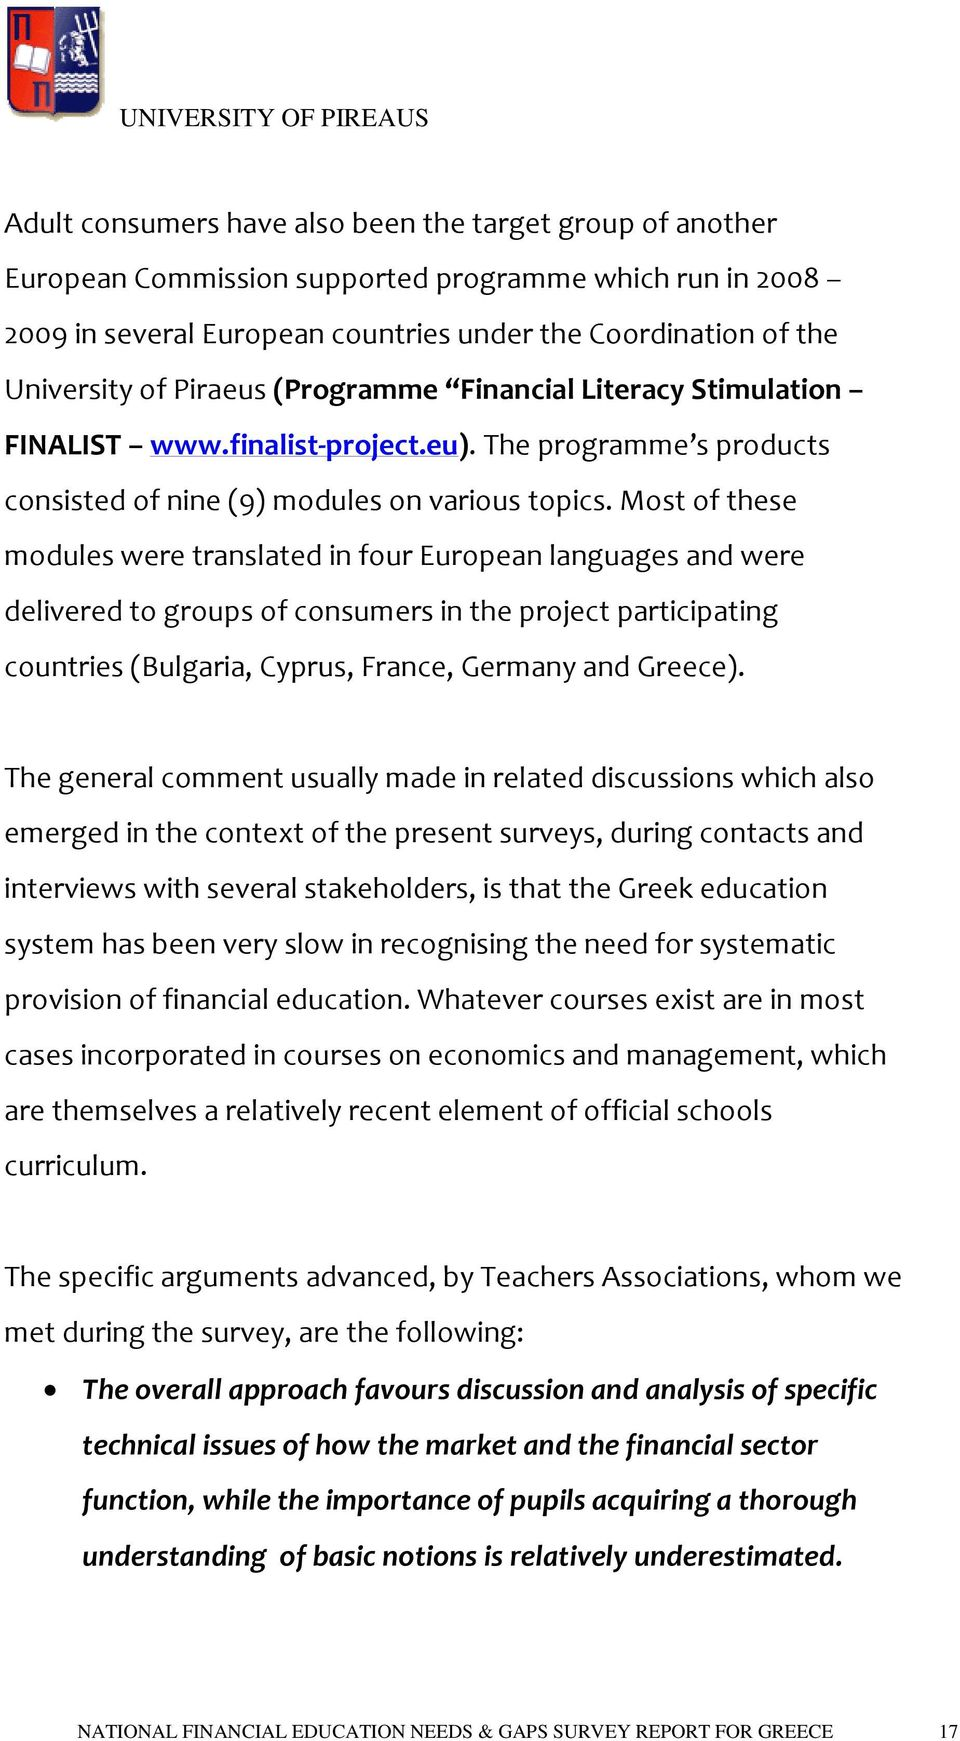 Most of these modules were translated in four European languages and were delivered to groups of consumers in the project participating countries (Bulgaria, Cyprus, France, Germany and Greece).